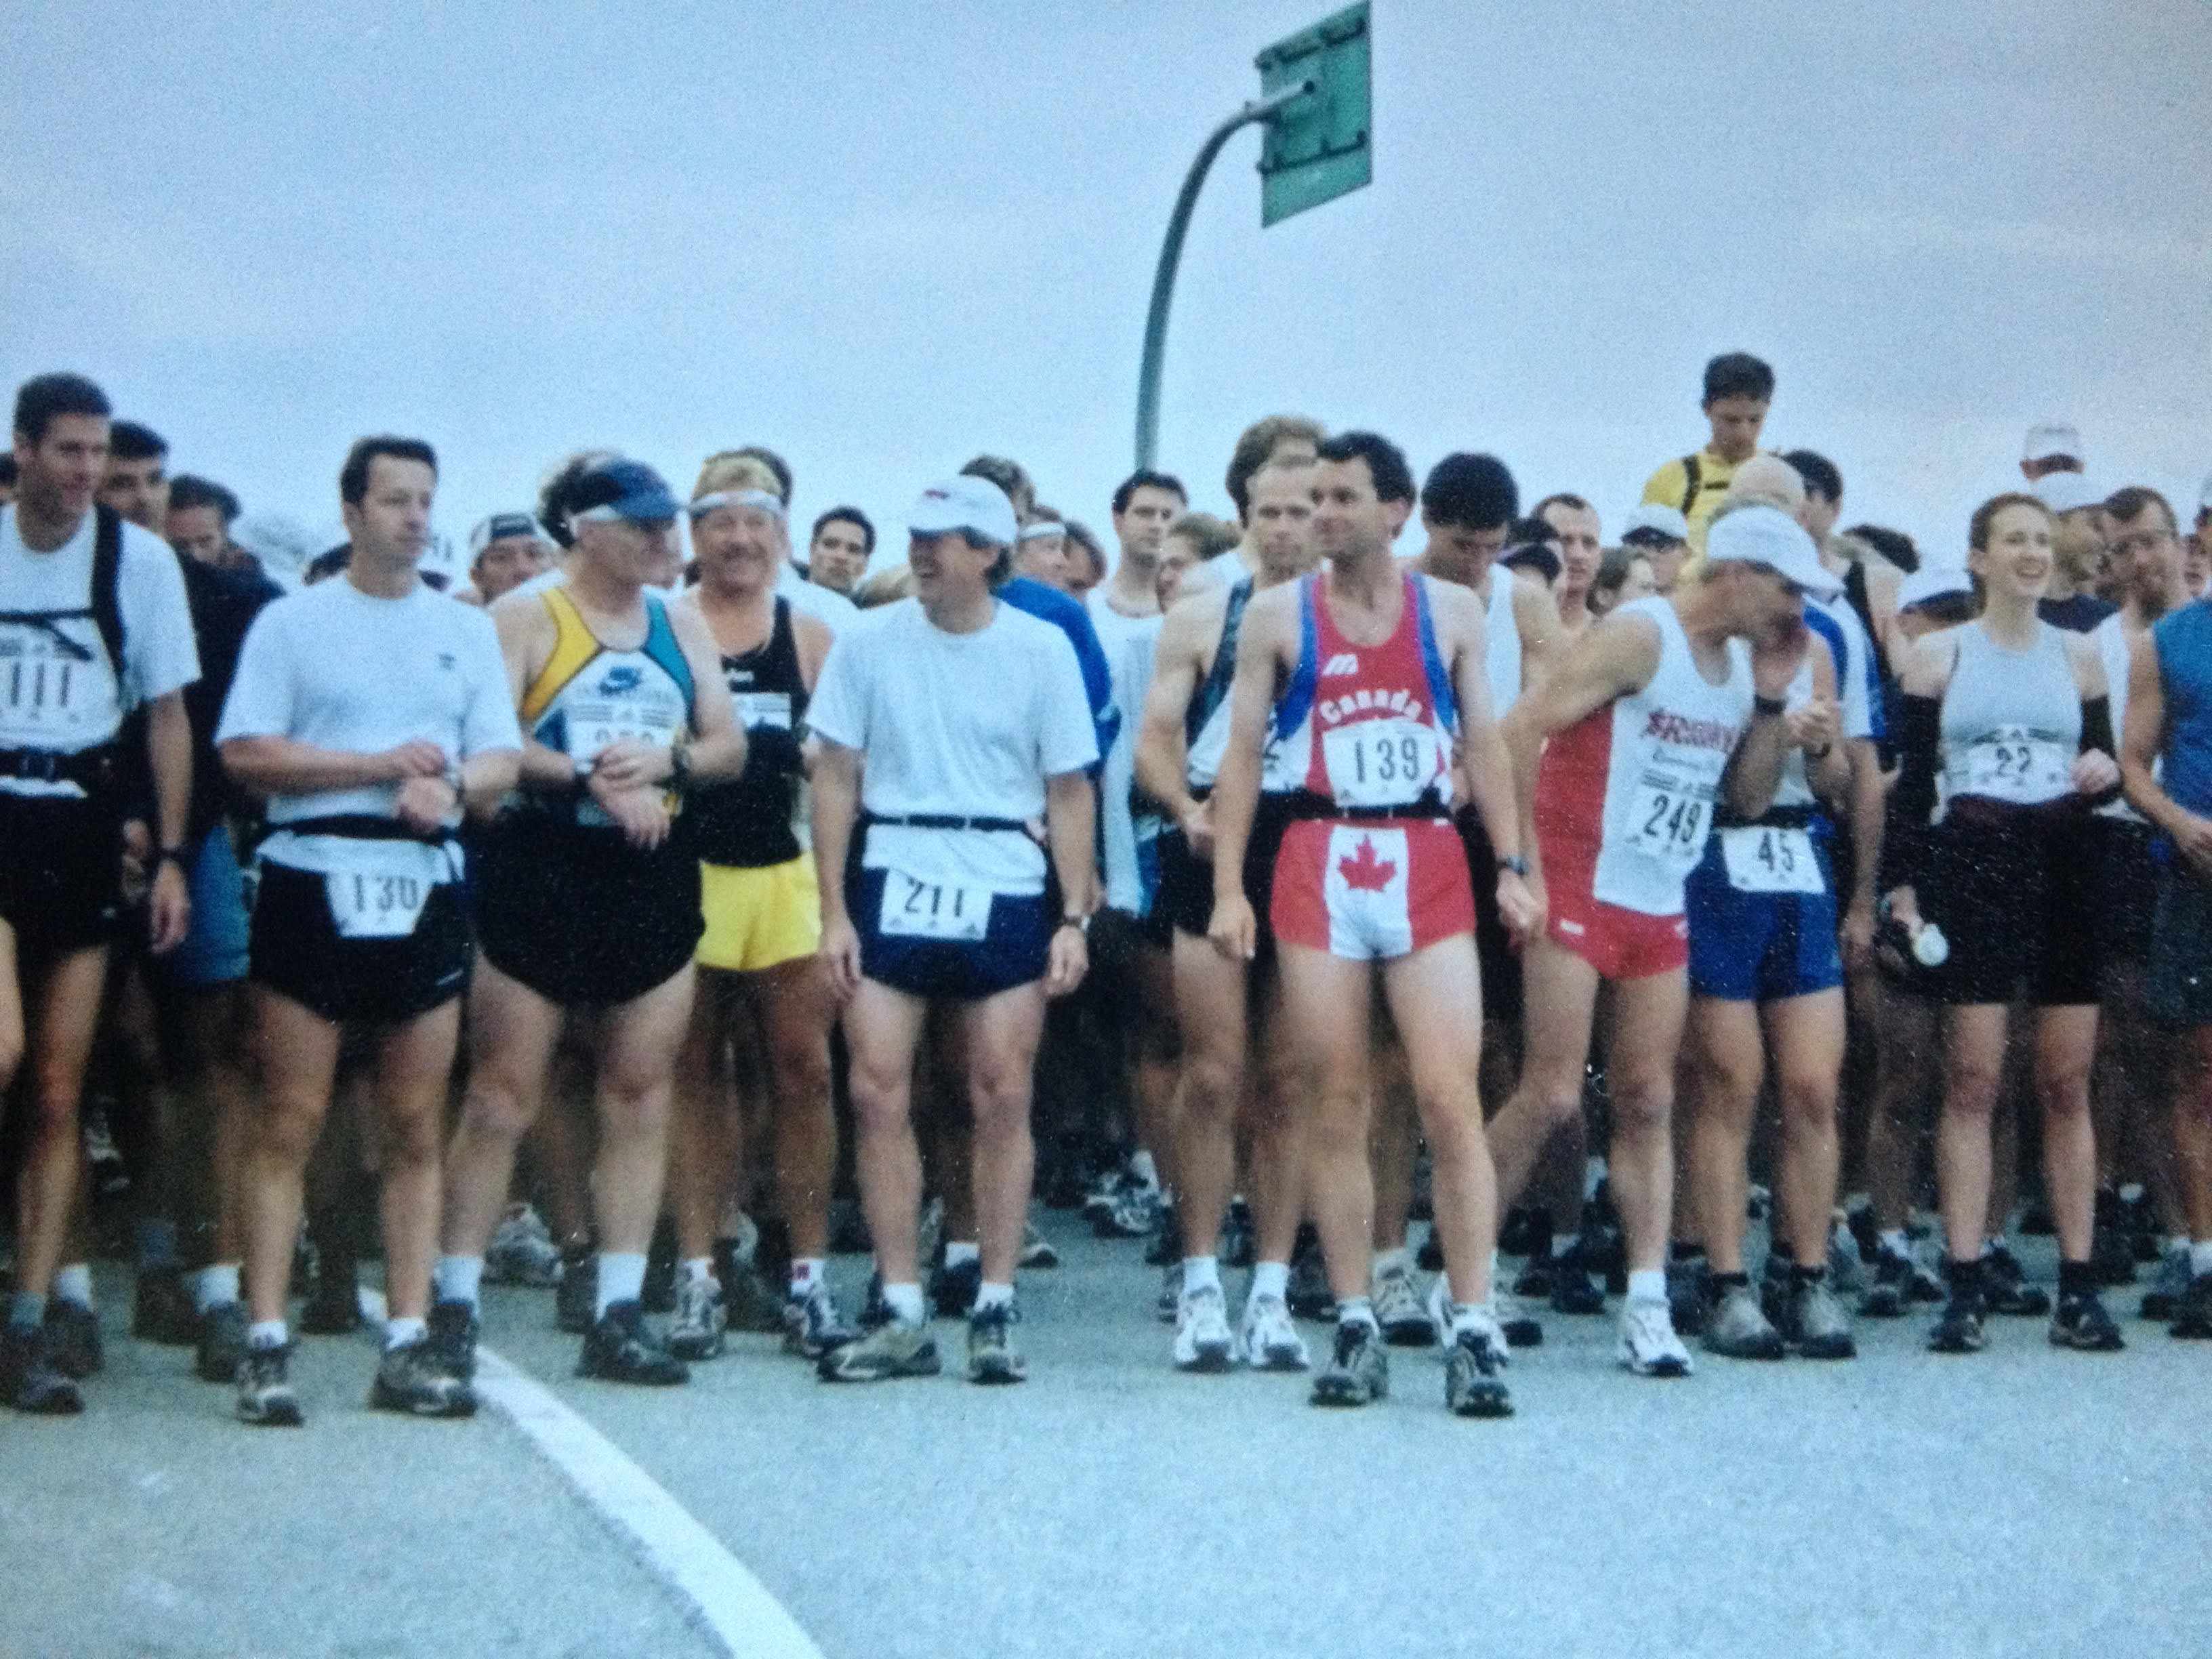 Trevor Wakelin (third from left, wearing blue and yellow singlet) at the start of the 2001 Knee Knacker.